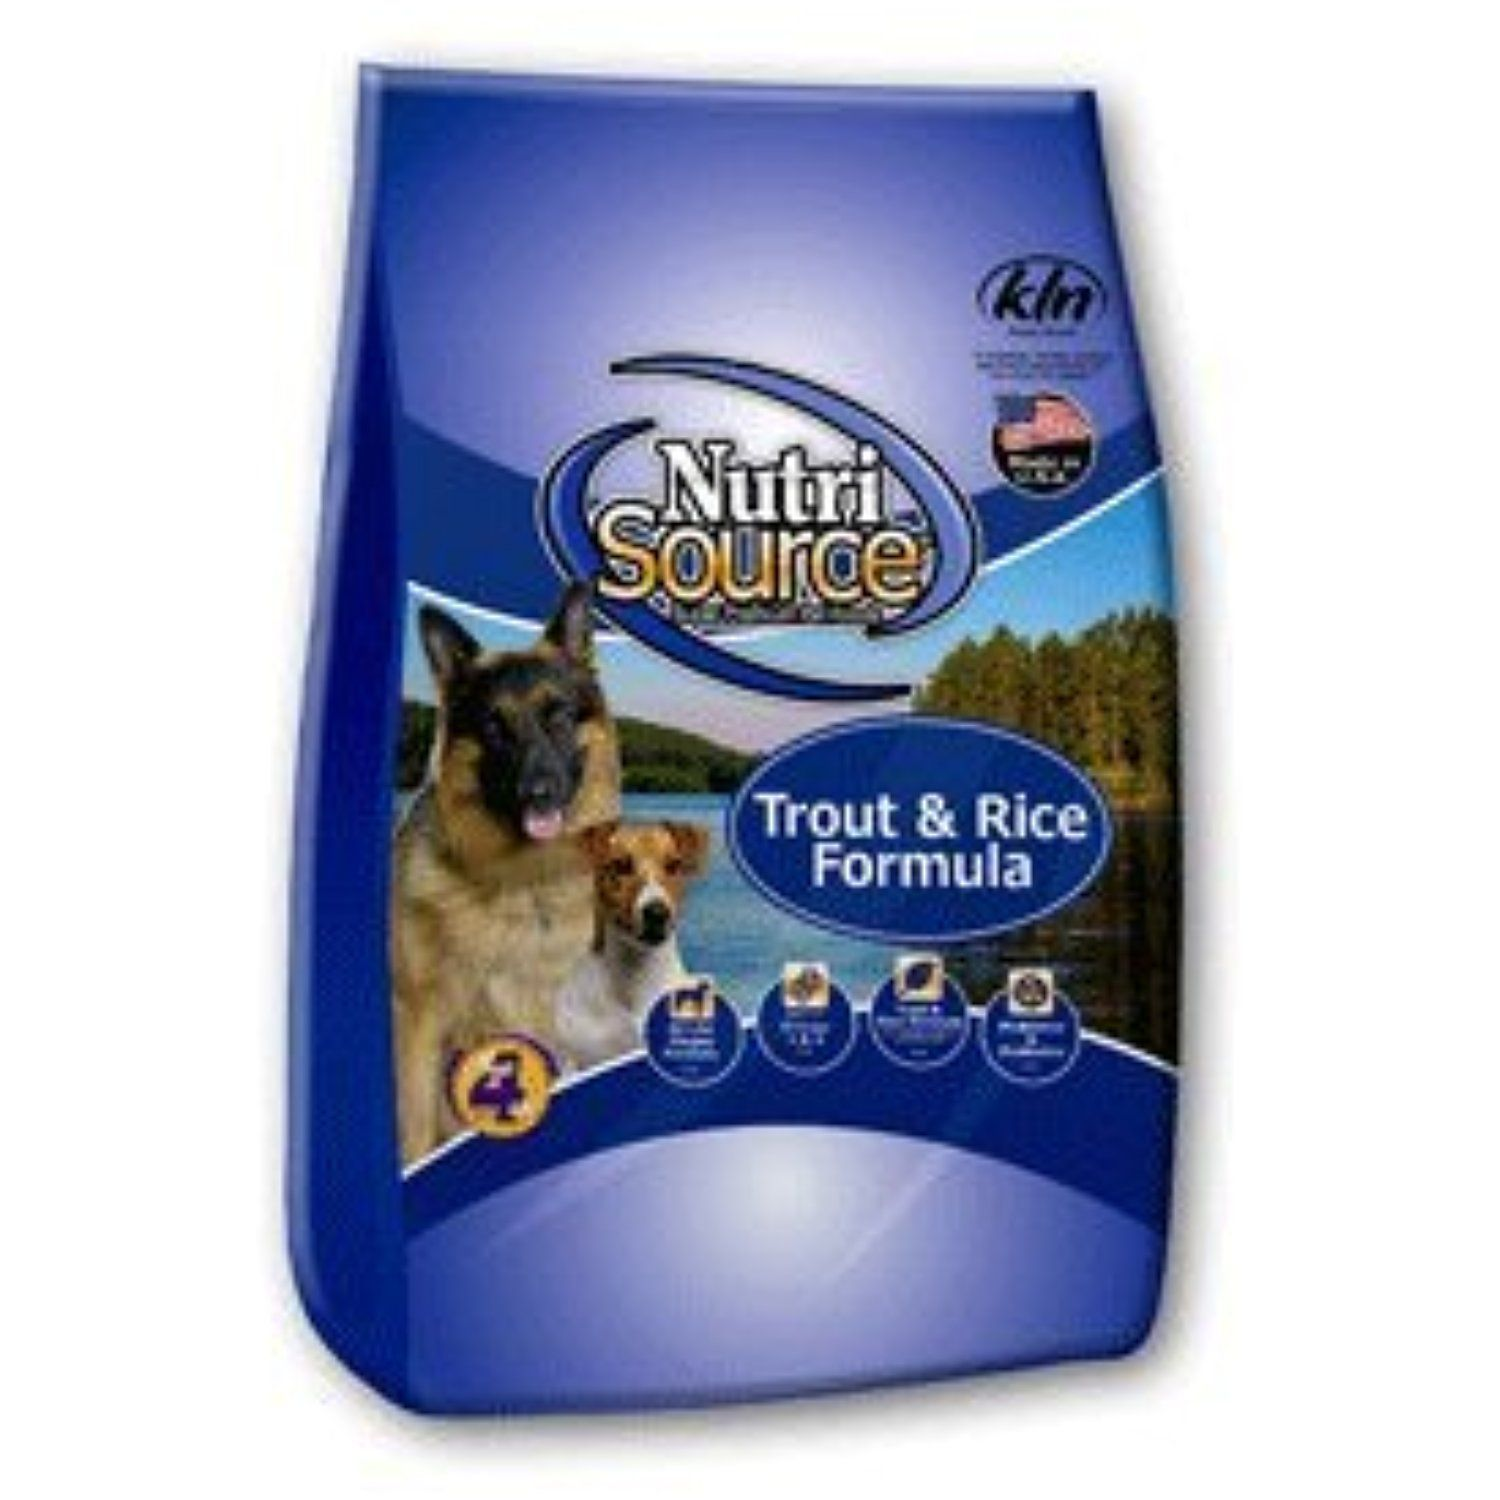 NutriSource Trout & Rice Dog Food 5 lb You could get